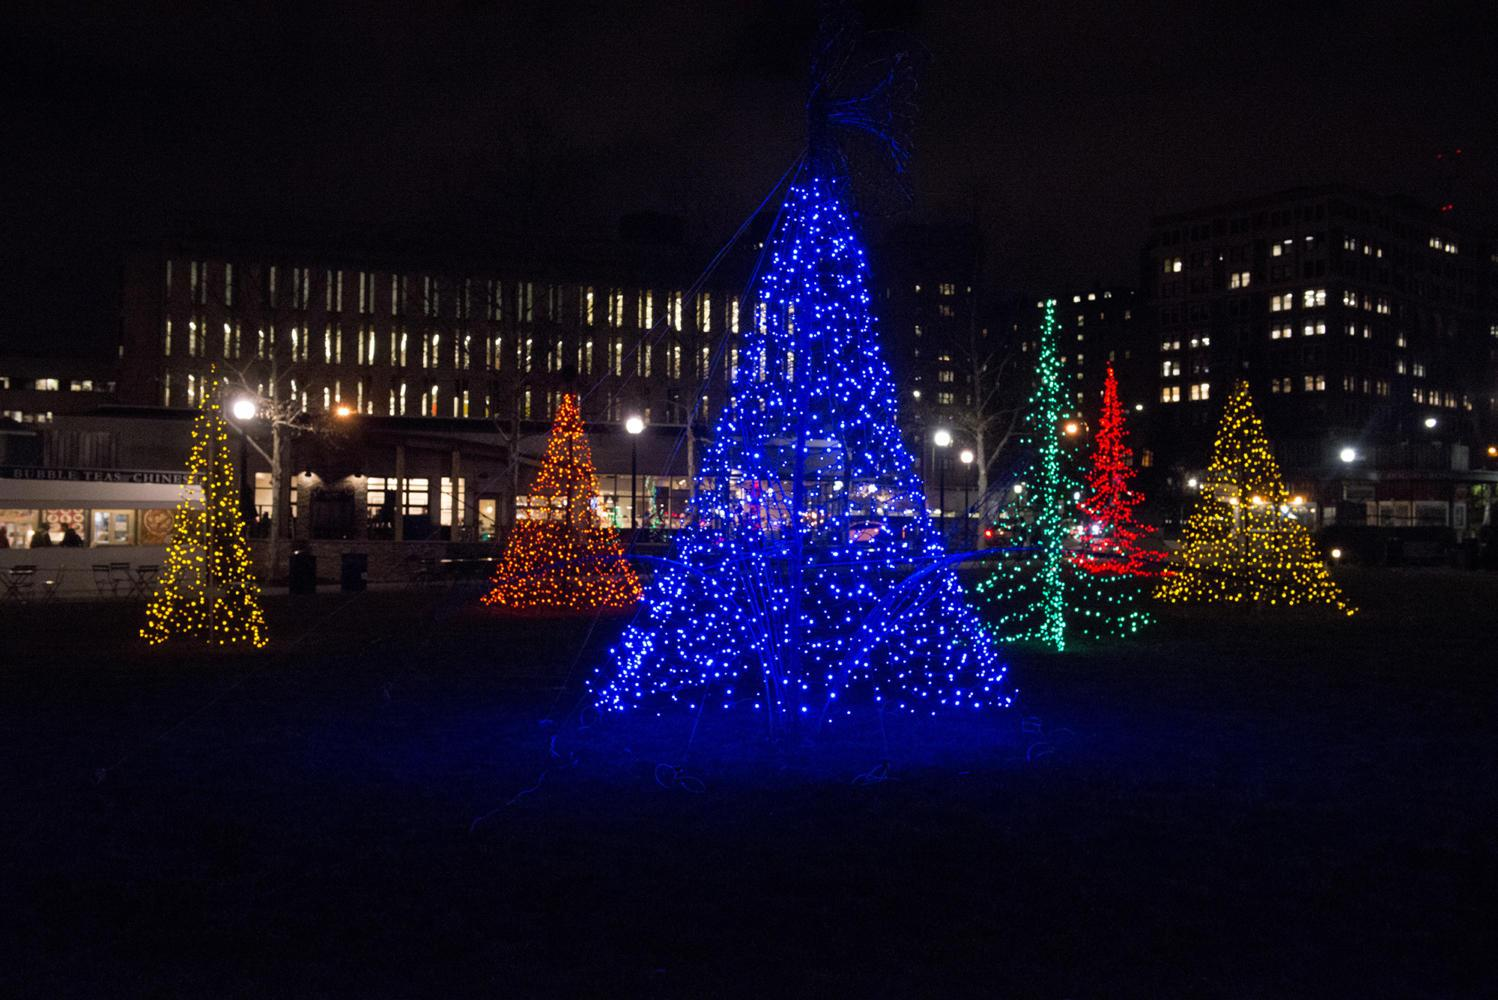 Christmas trees in Schenley Plaza are lit up at night during the holiday season. (Photo by Elise Lavallee | Contributing Editor)